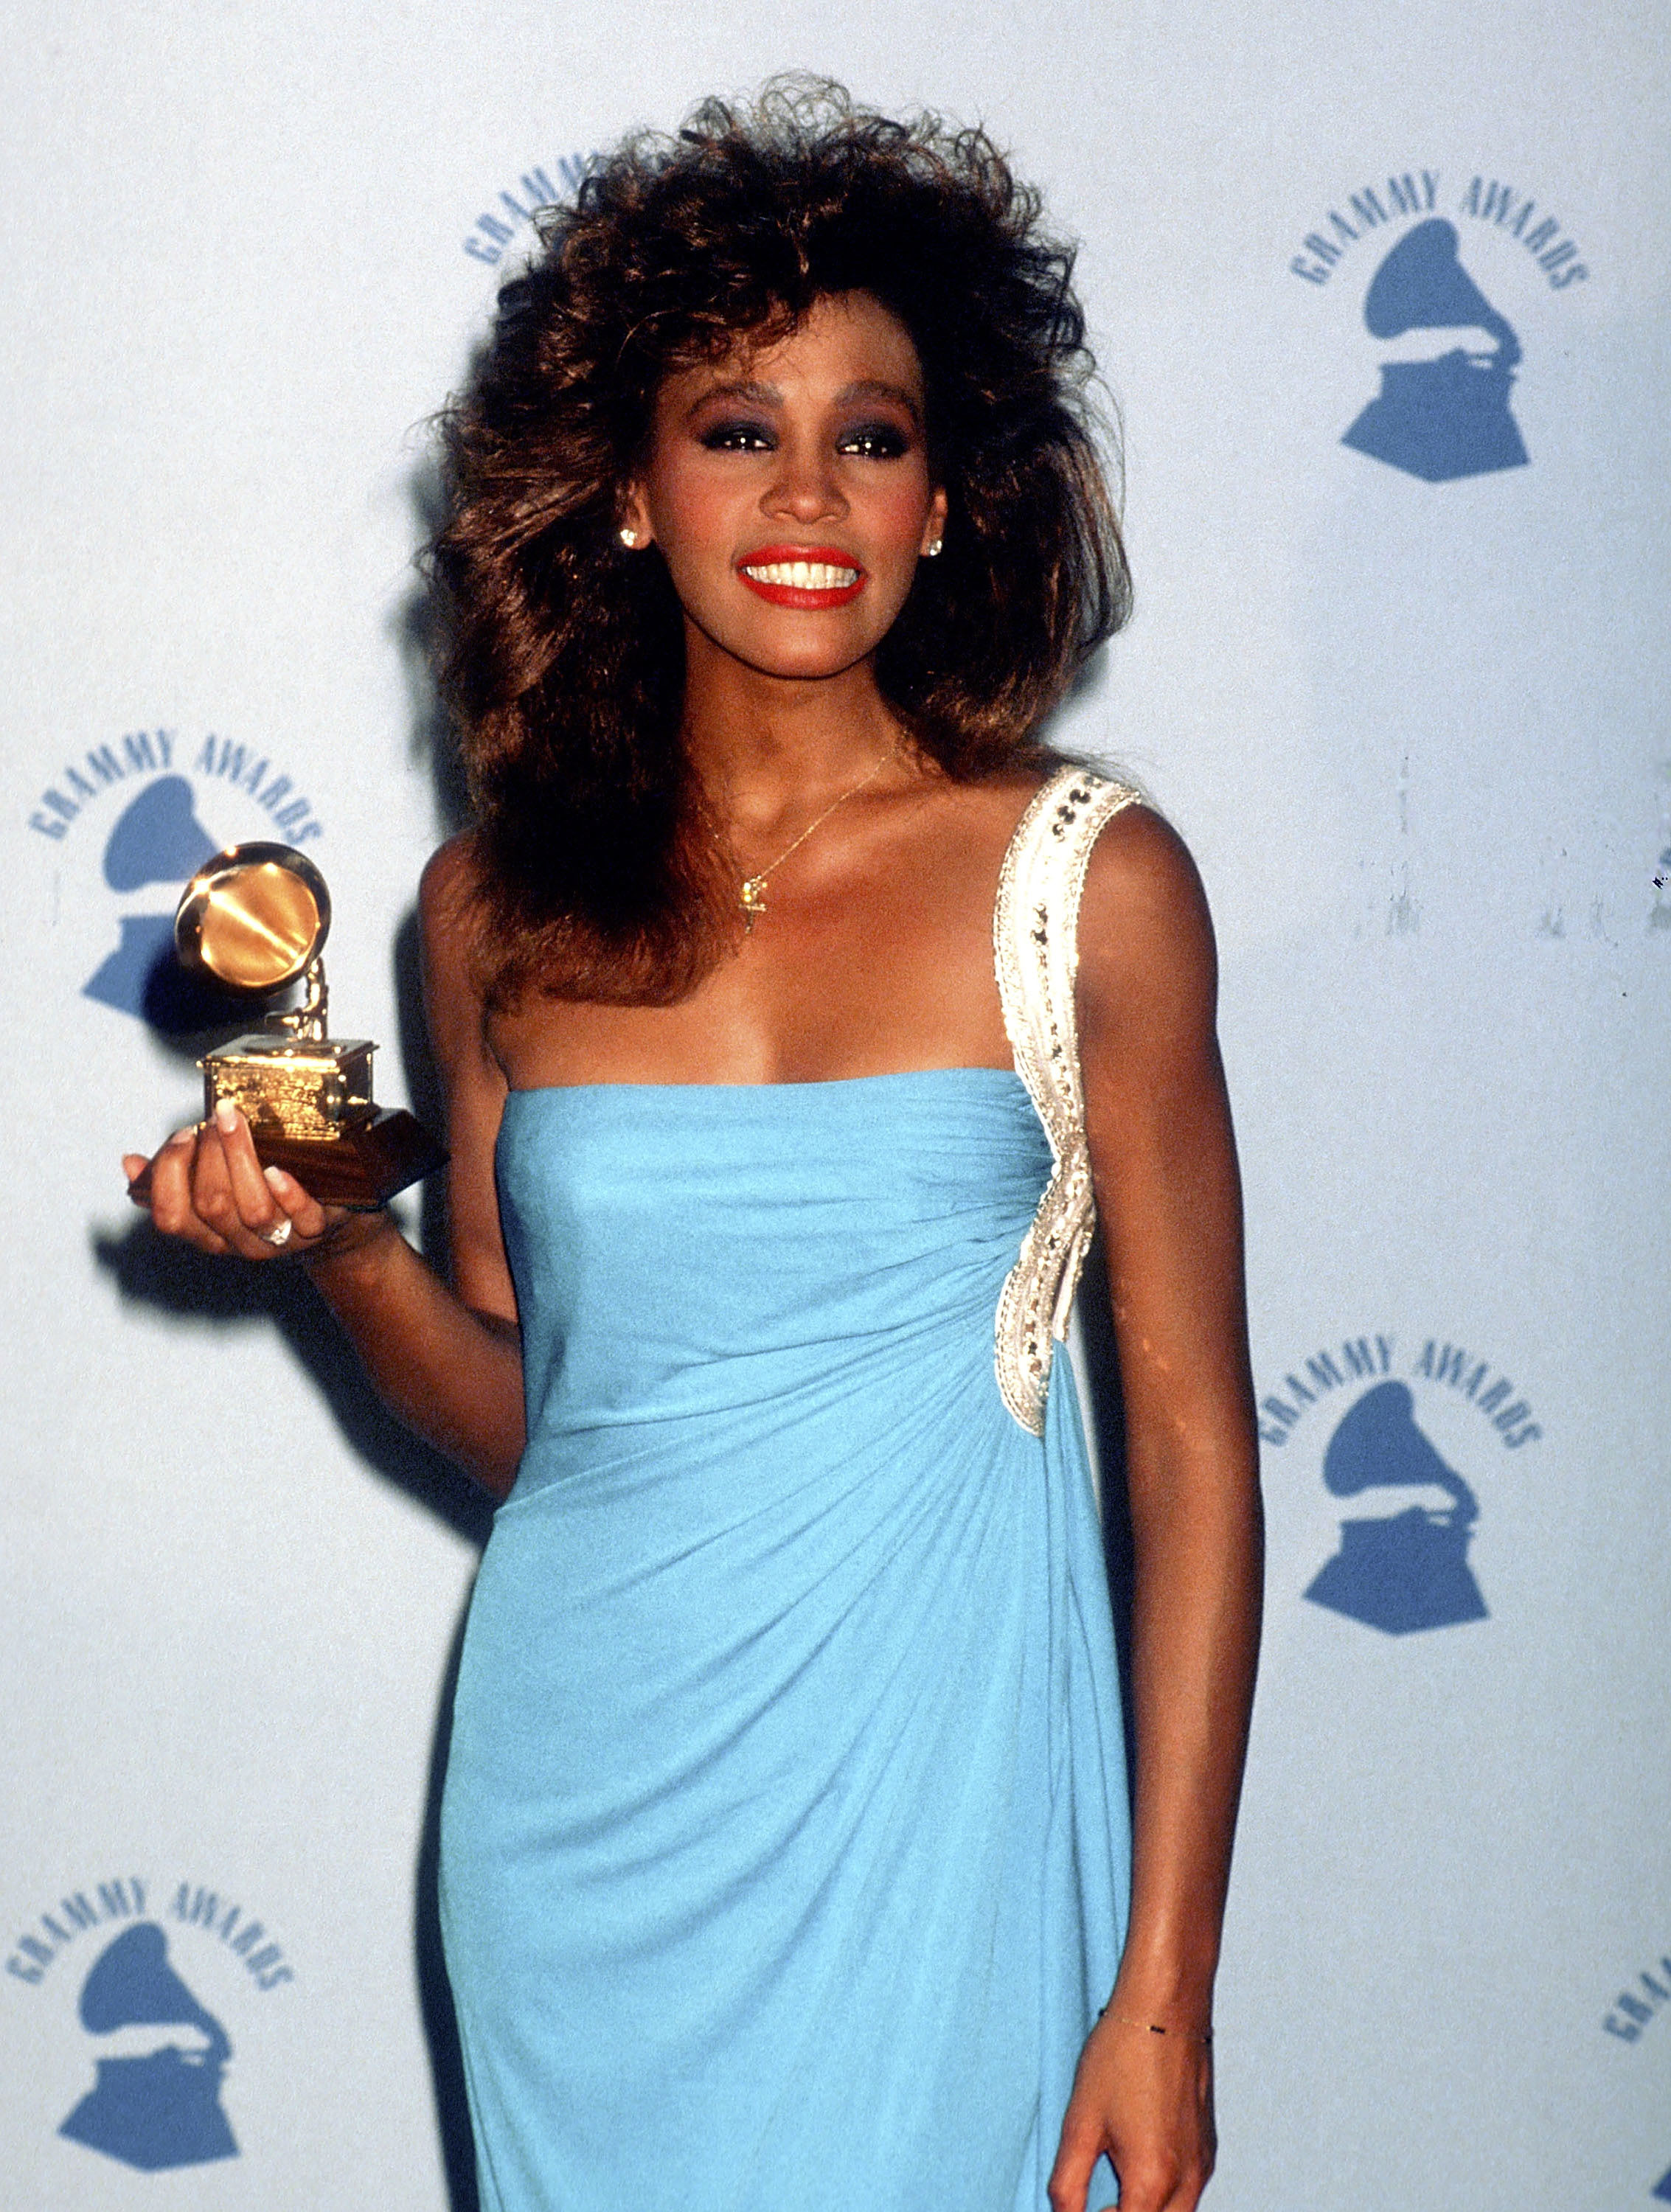 Whitney Houston attends the 28th Annual Grammy Awards in Los Angeles on Feb. 25, 1986.